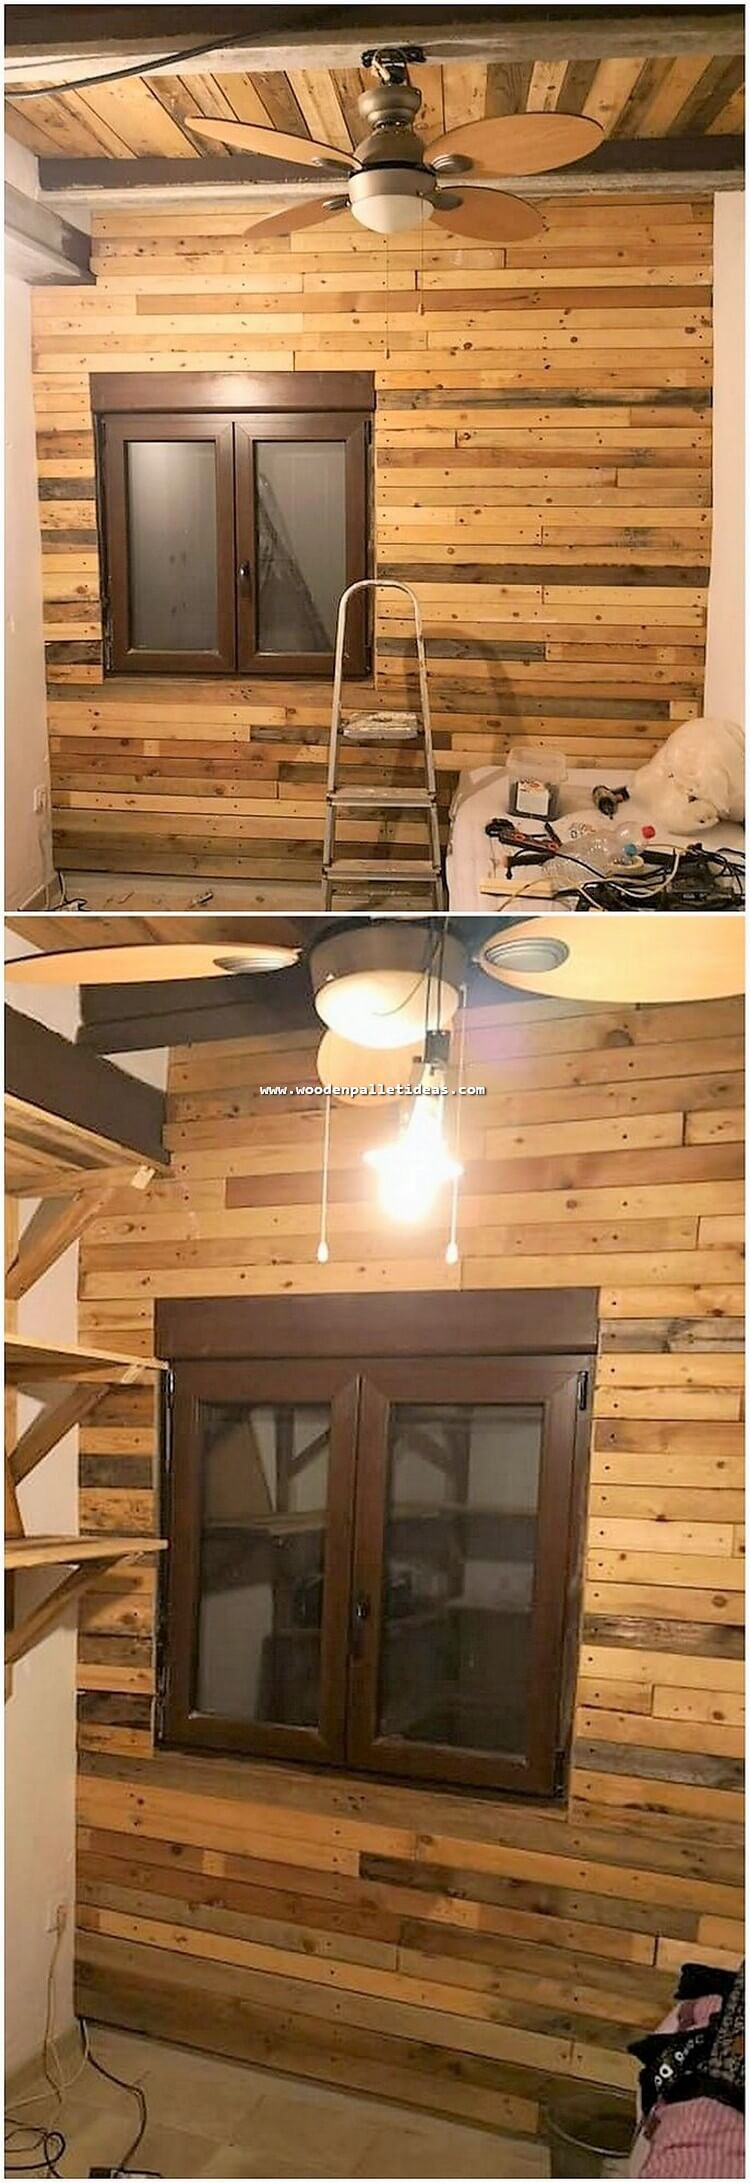 Pallet Wall and Roof